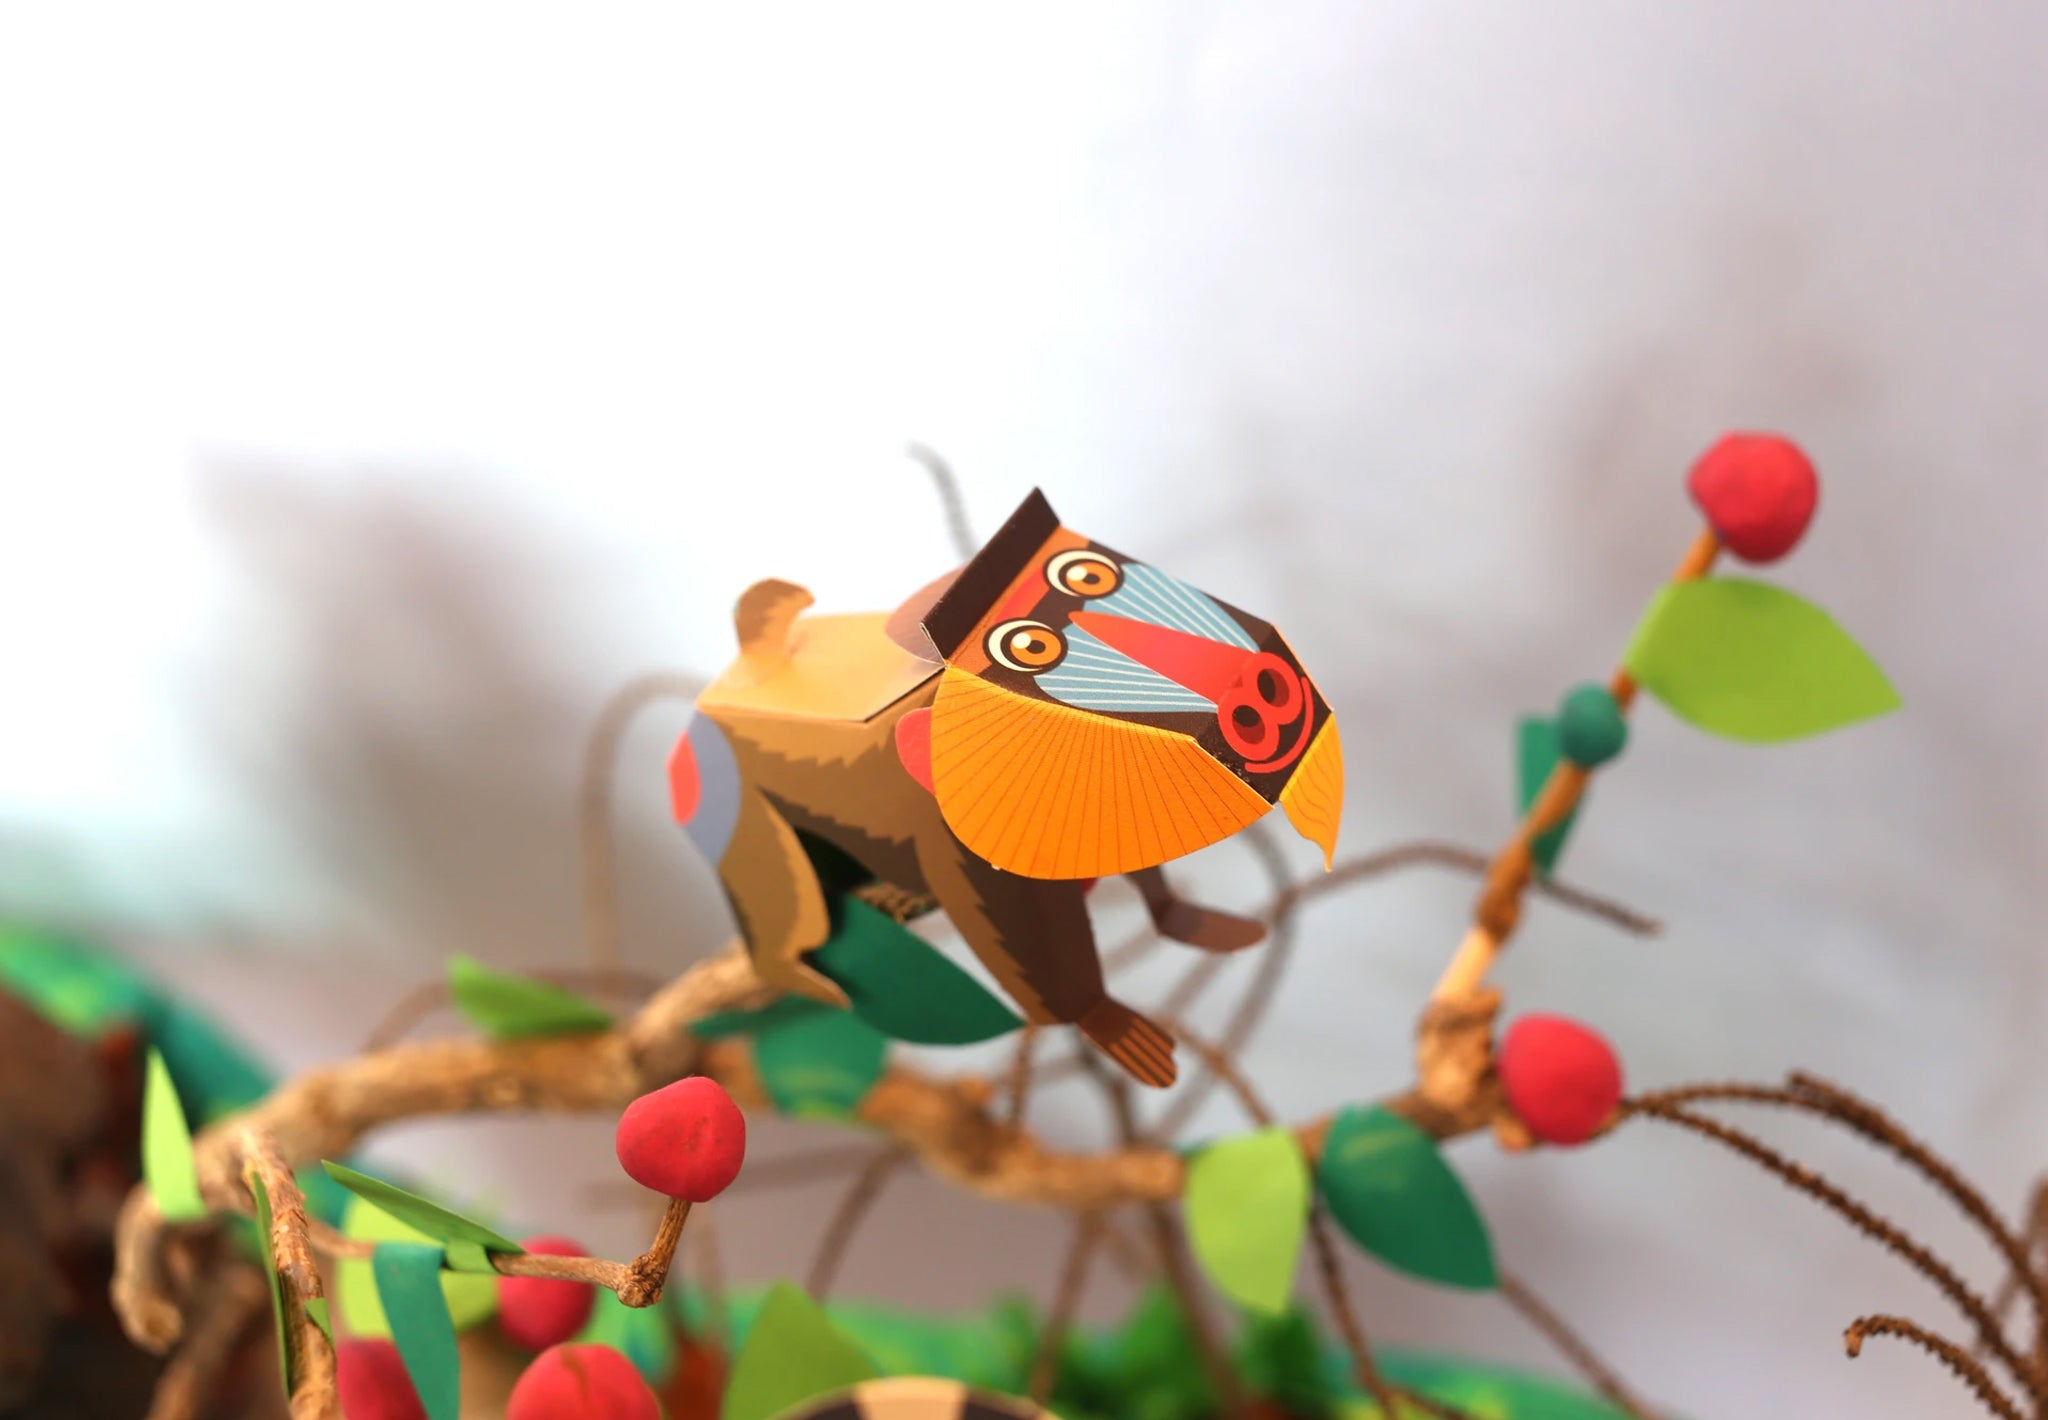 Mini Mandrill Educational DIY Paper Craft Kit: Endangered Wildlife Series